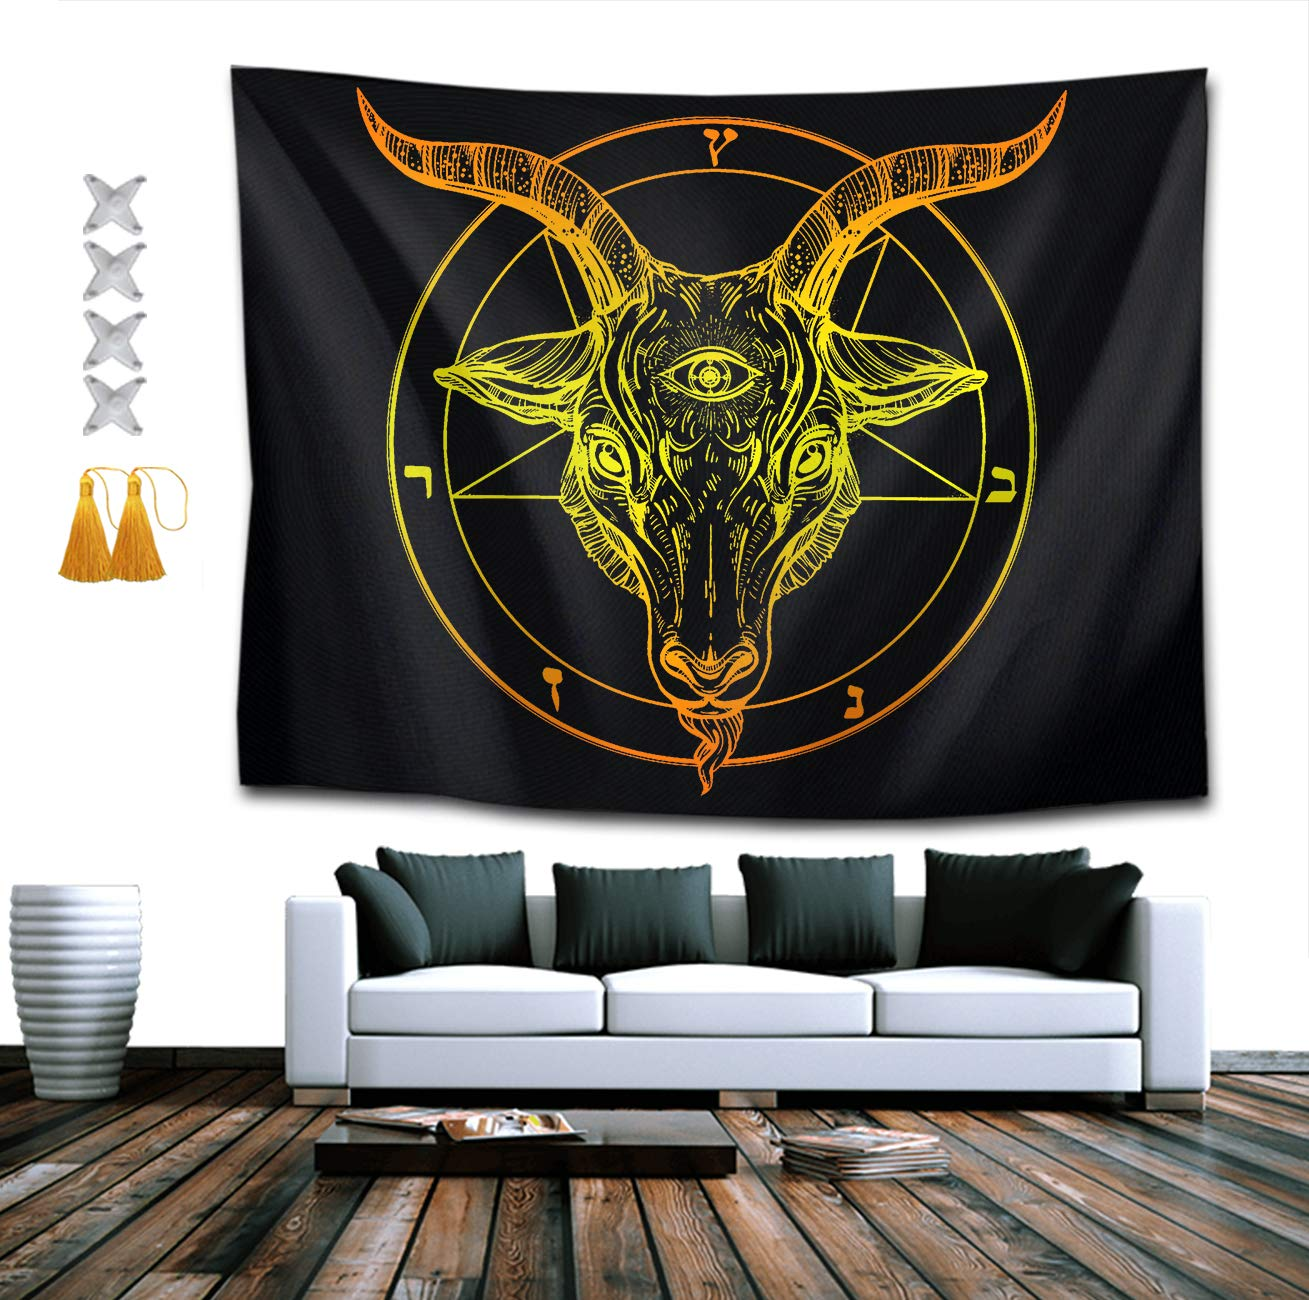 BOYOKO ME Bohemian Wall Hanging Hippie Hippy Tapestry,Baphomet 3D Print Indian Room Decor Bedding Tapestry, Mysterious Tapestry - 60 x 90 inches, Beach Towels